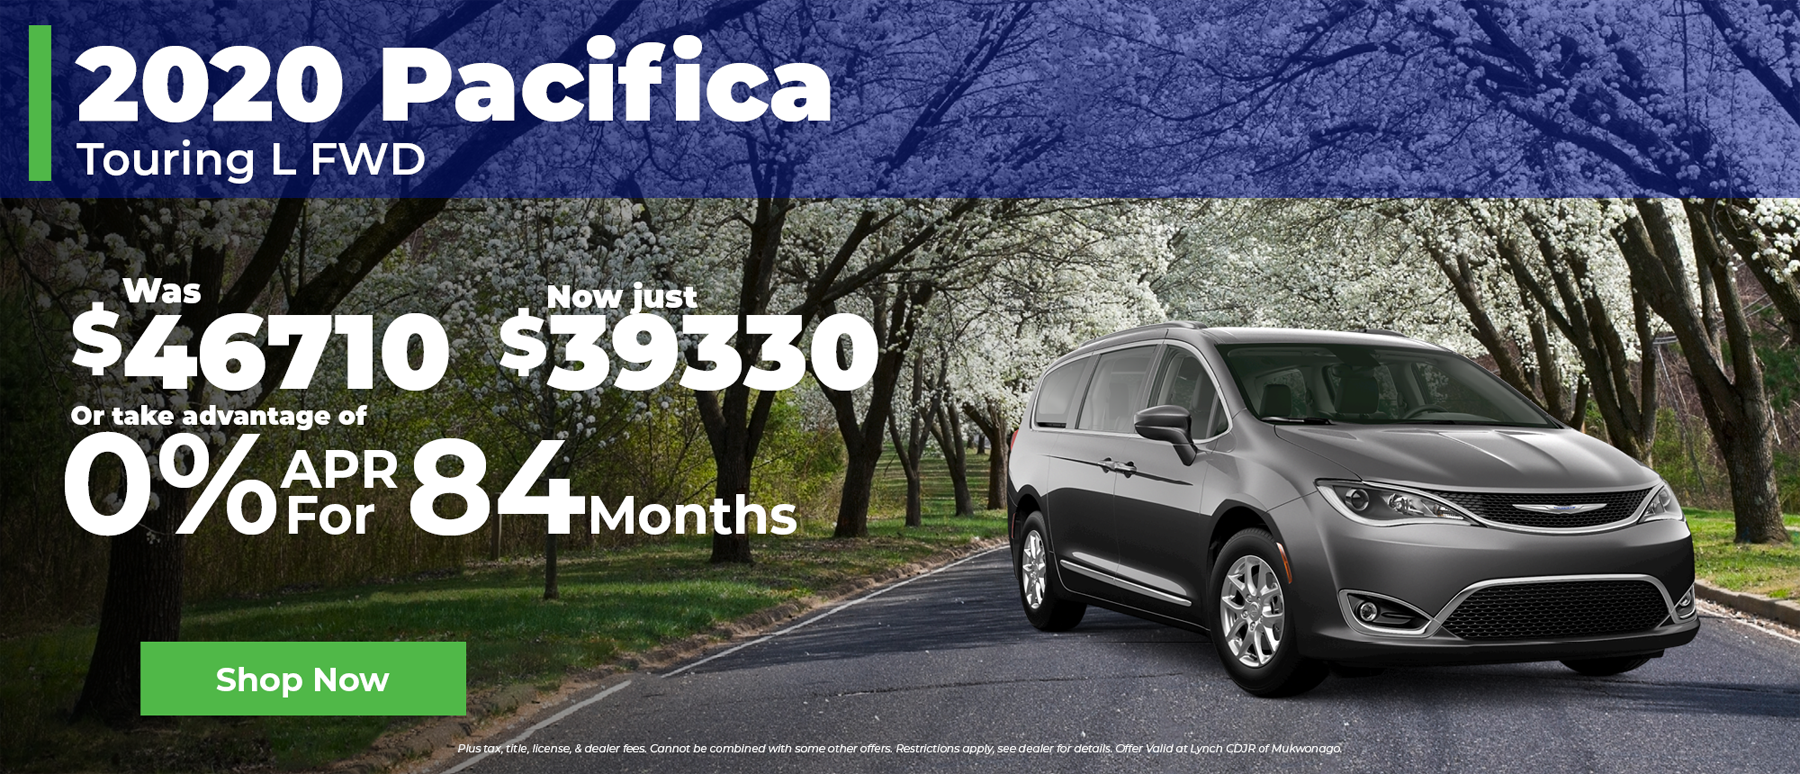 2020 Chrysler Pacifica 0% Financing for 84 months in Mukwonago WI